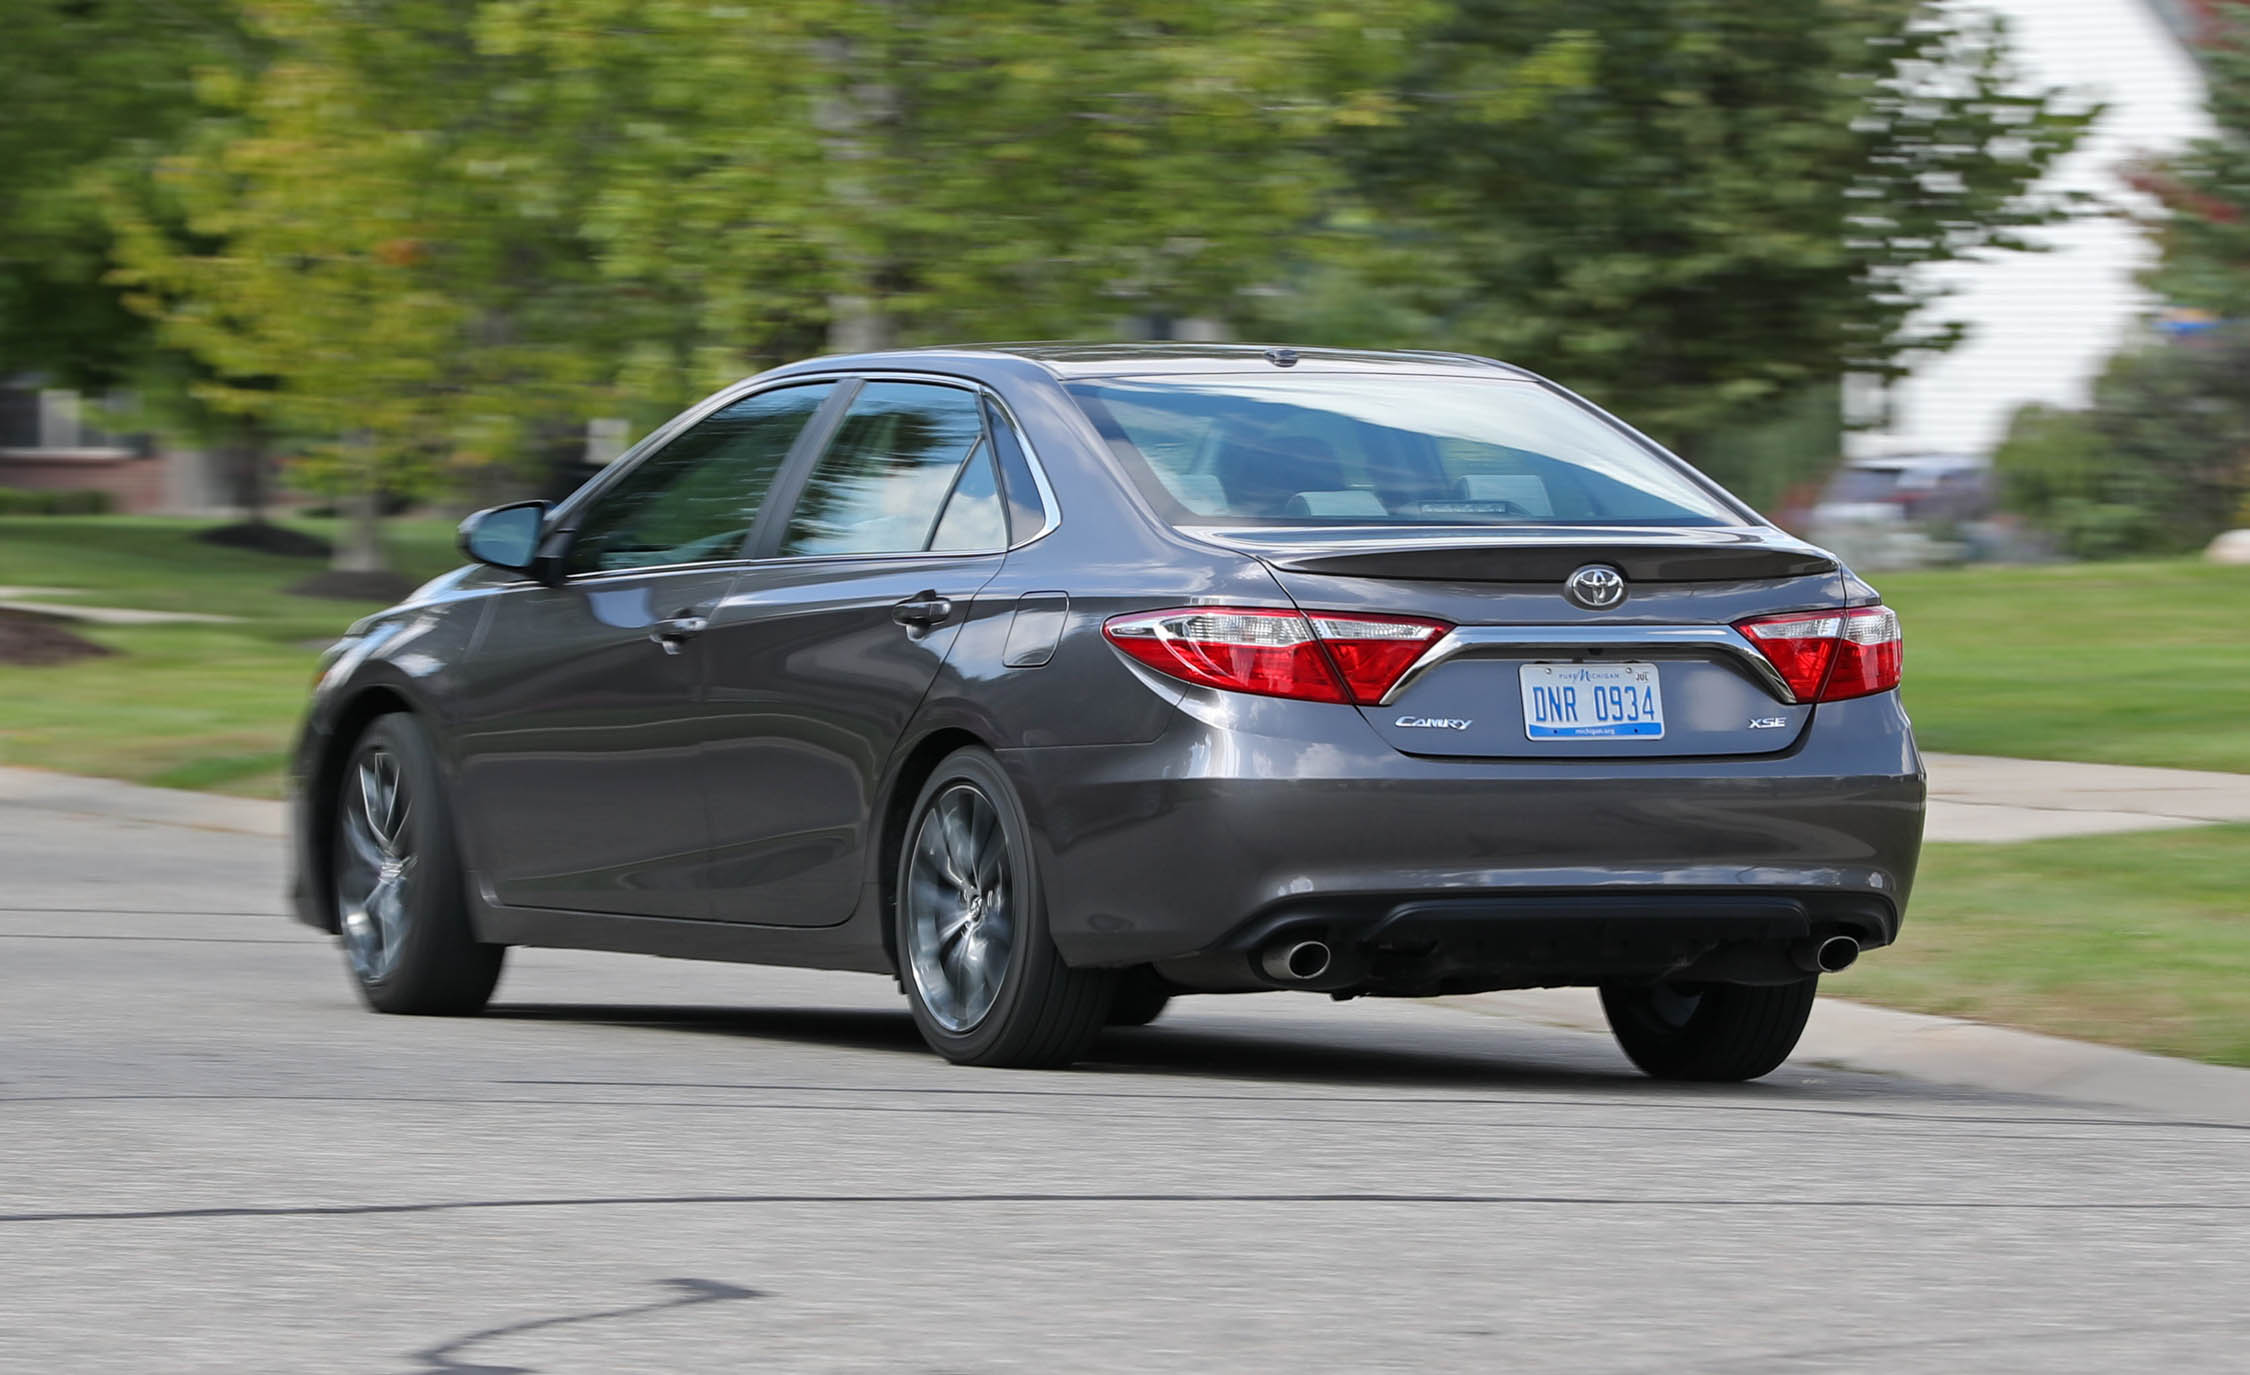 2017 Toyota Camry Test Drive Rear And Side Preview (View 13 of 37)